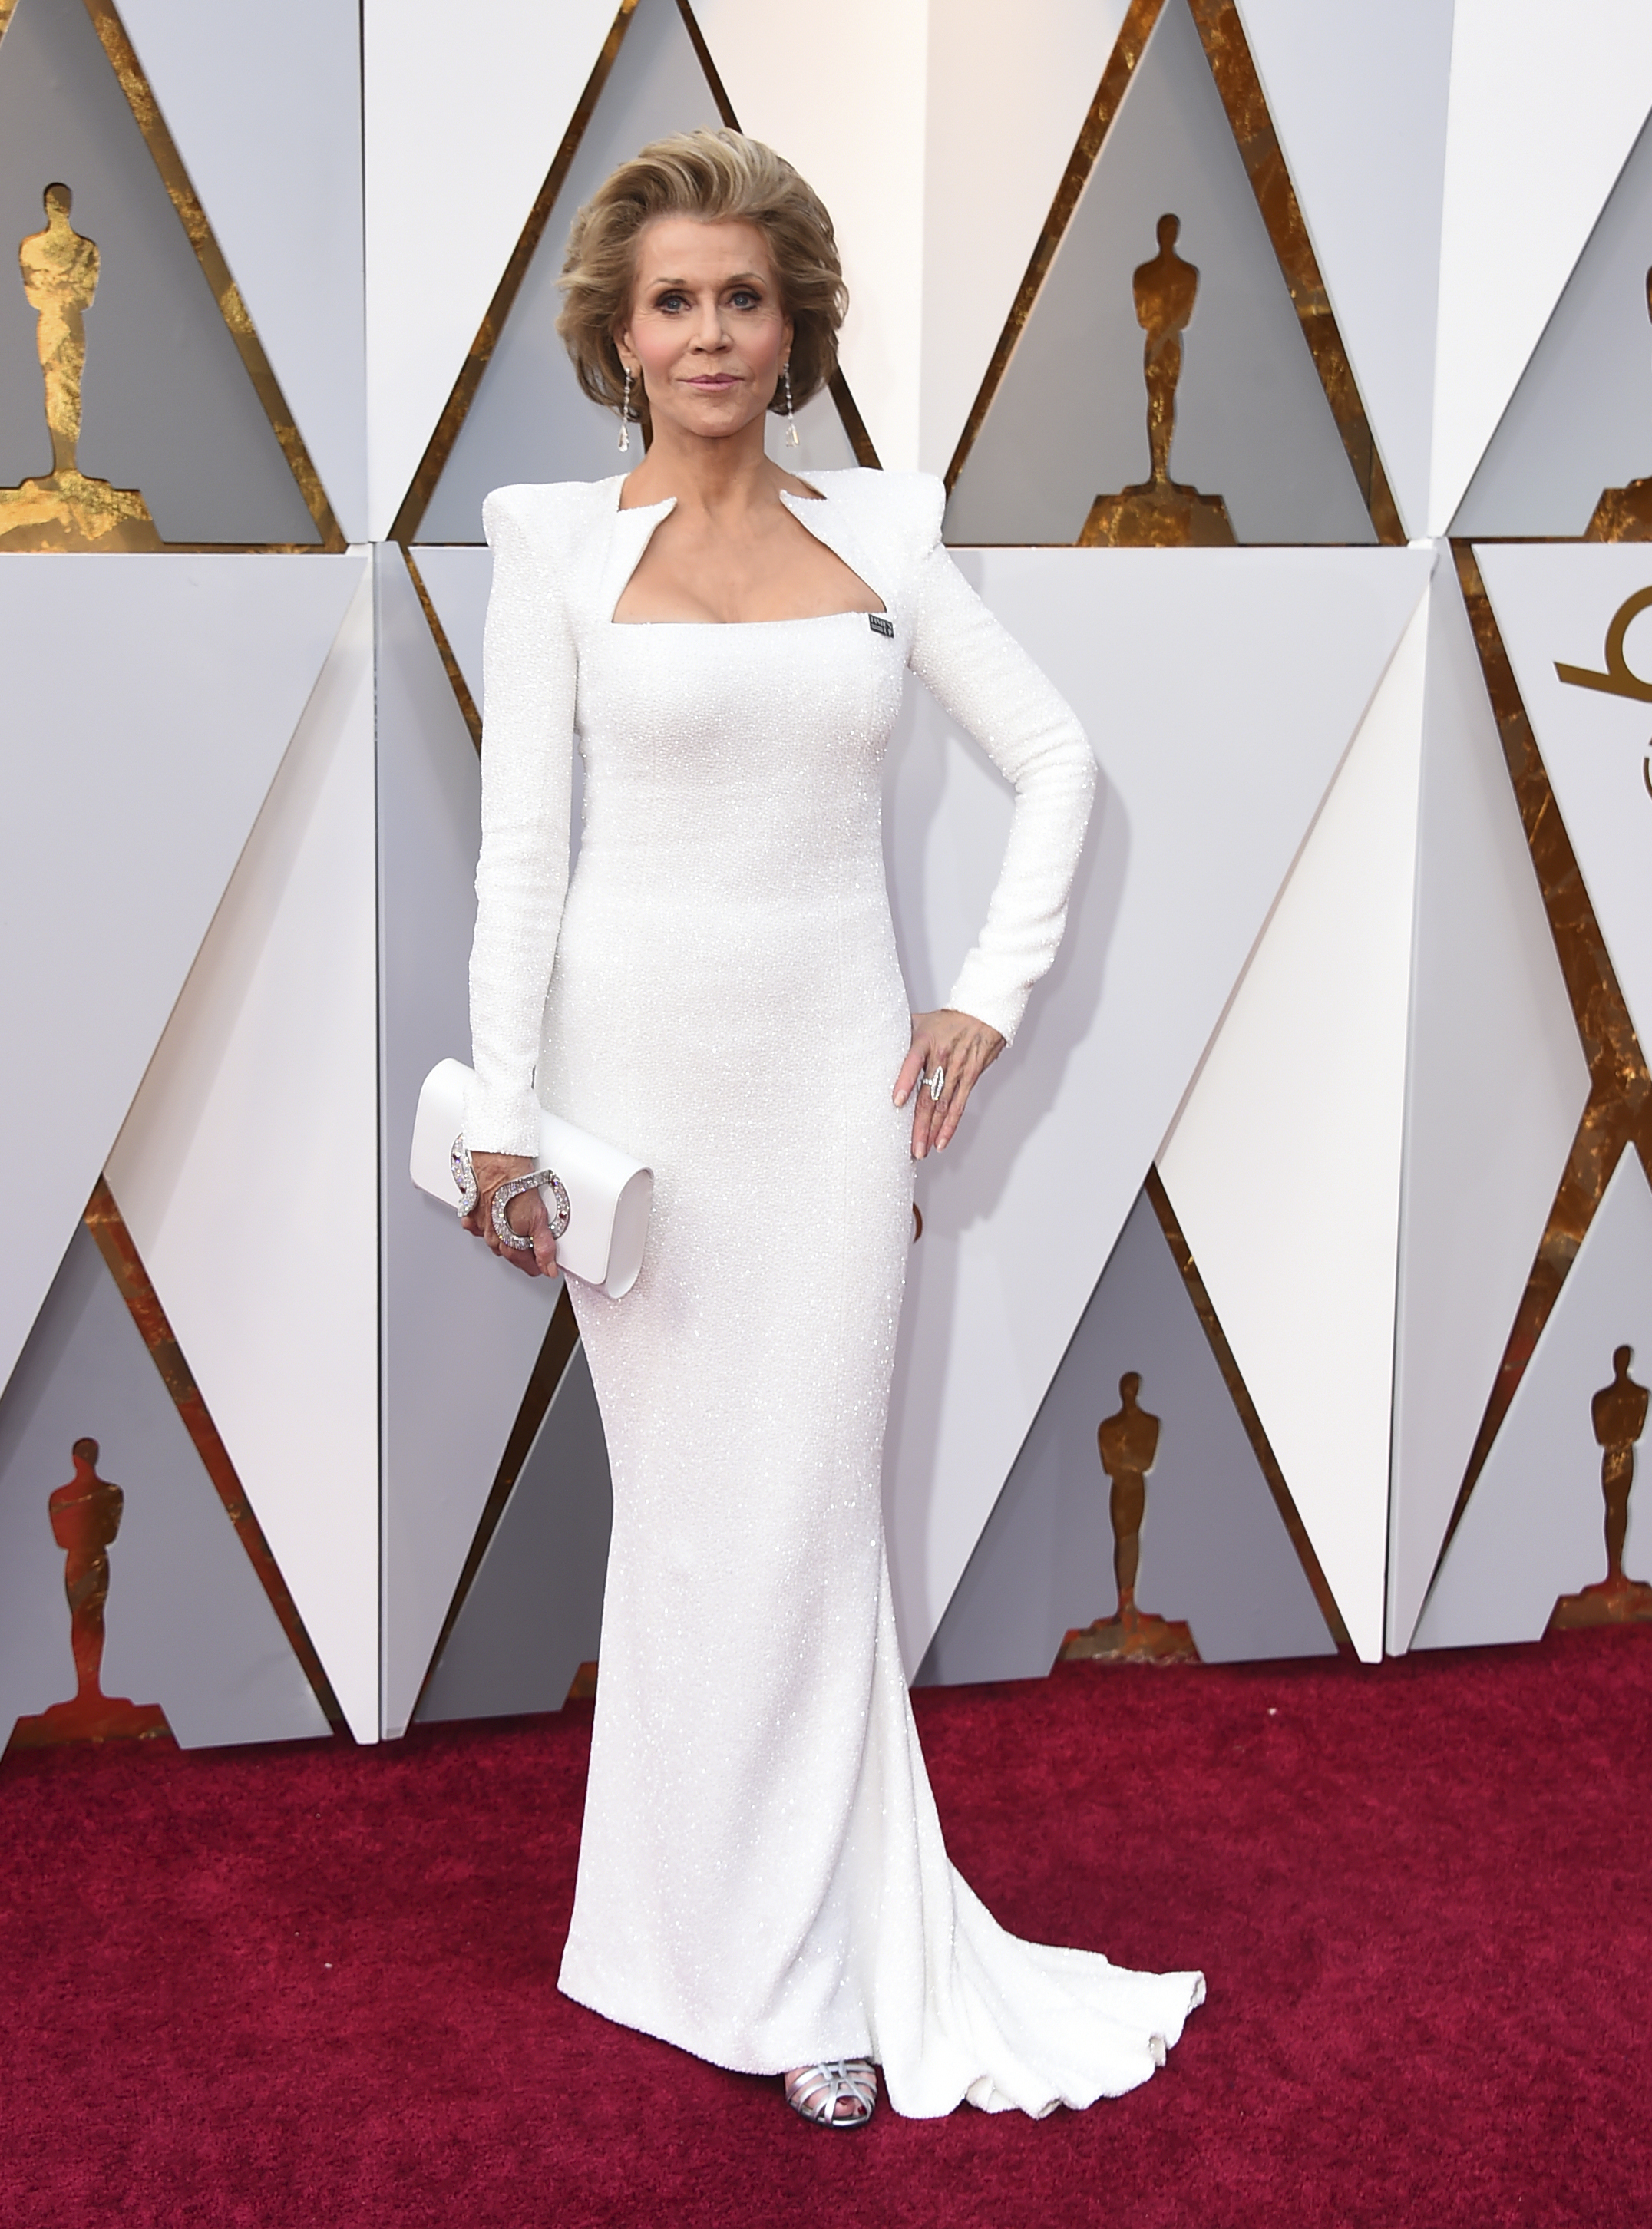 "<div class=""meta image-caption""><div class=""origin-logo origin-image none""><span>none</span></div><span class=""caption-text"">Jane Fonda arrives at the Oscars on Sunday, March 4, 2018, at the Dolby Theatre in Los Angeles. (Jordan Strauss/Invision/AP)</span></div>"